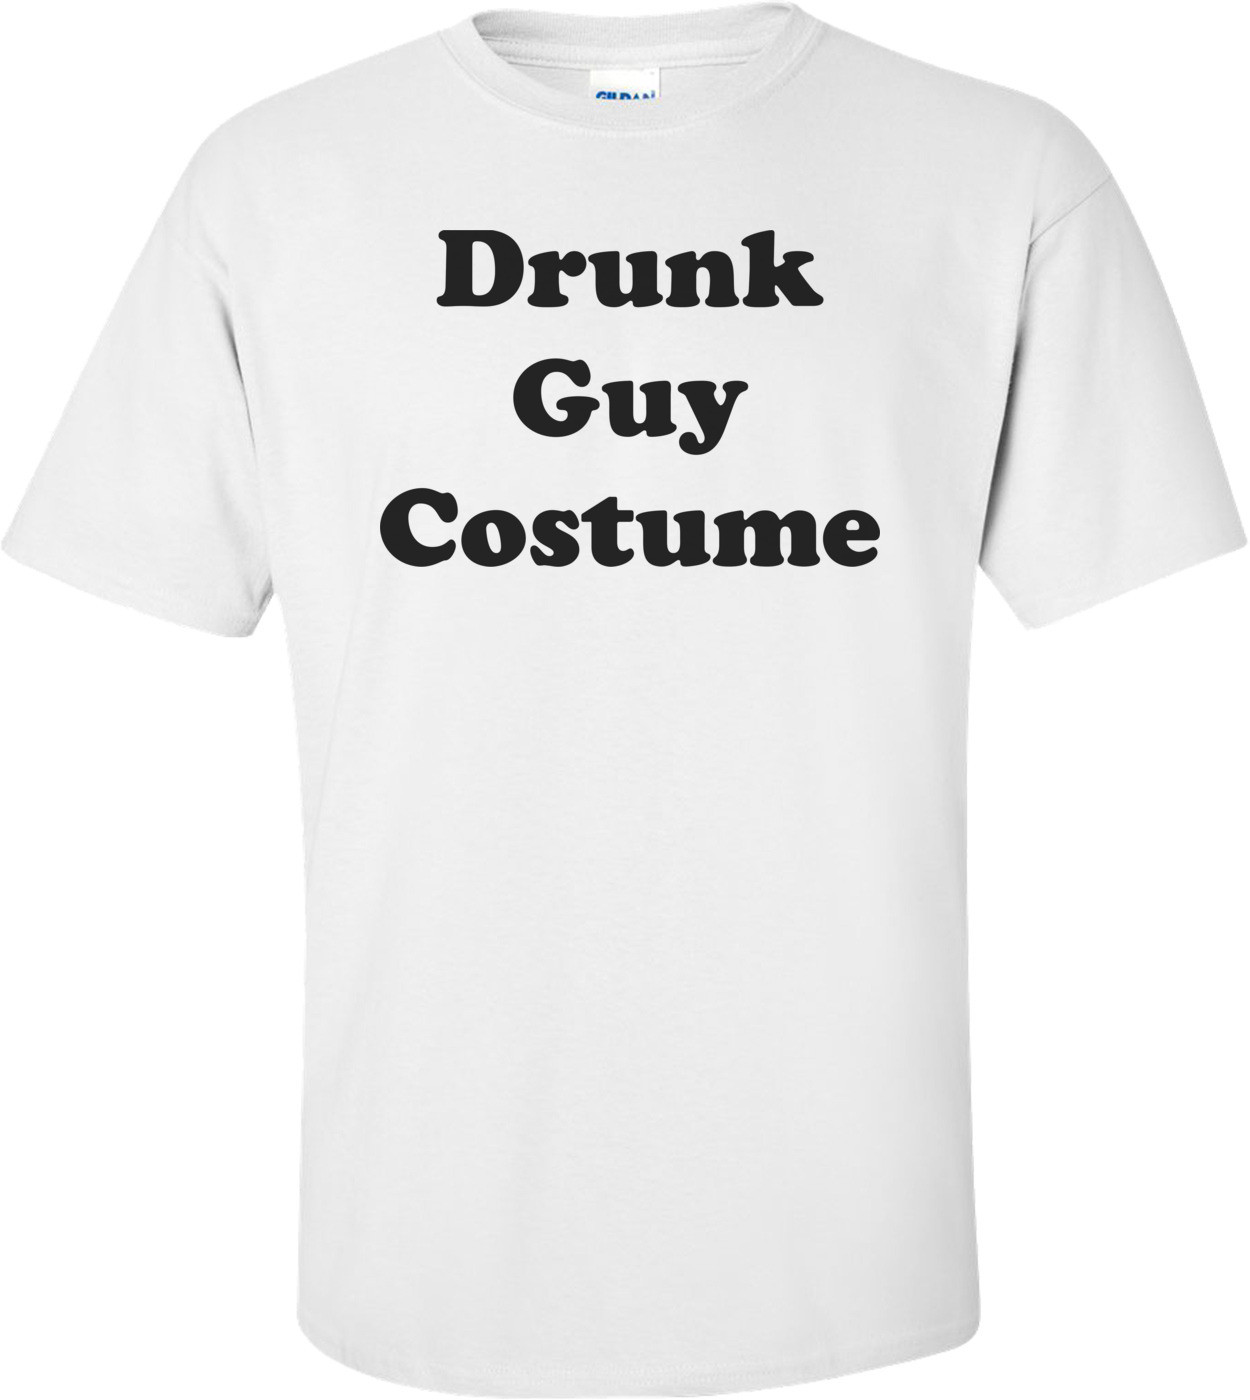 Drunk Guy Costume Shirt